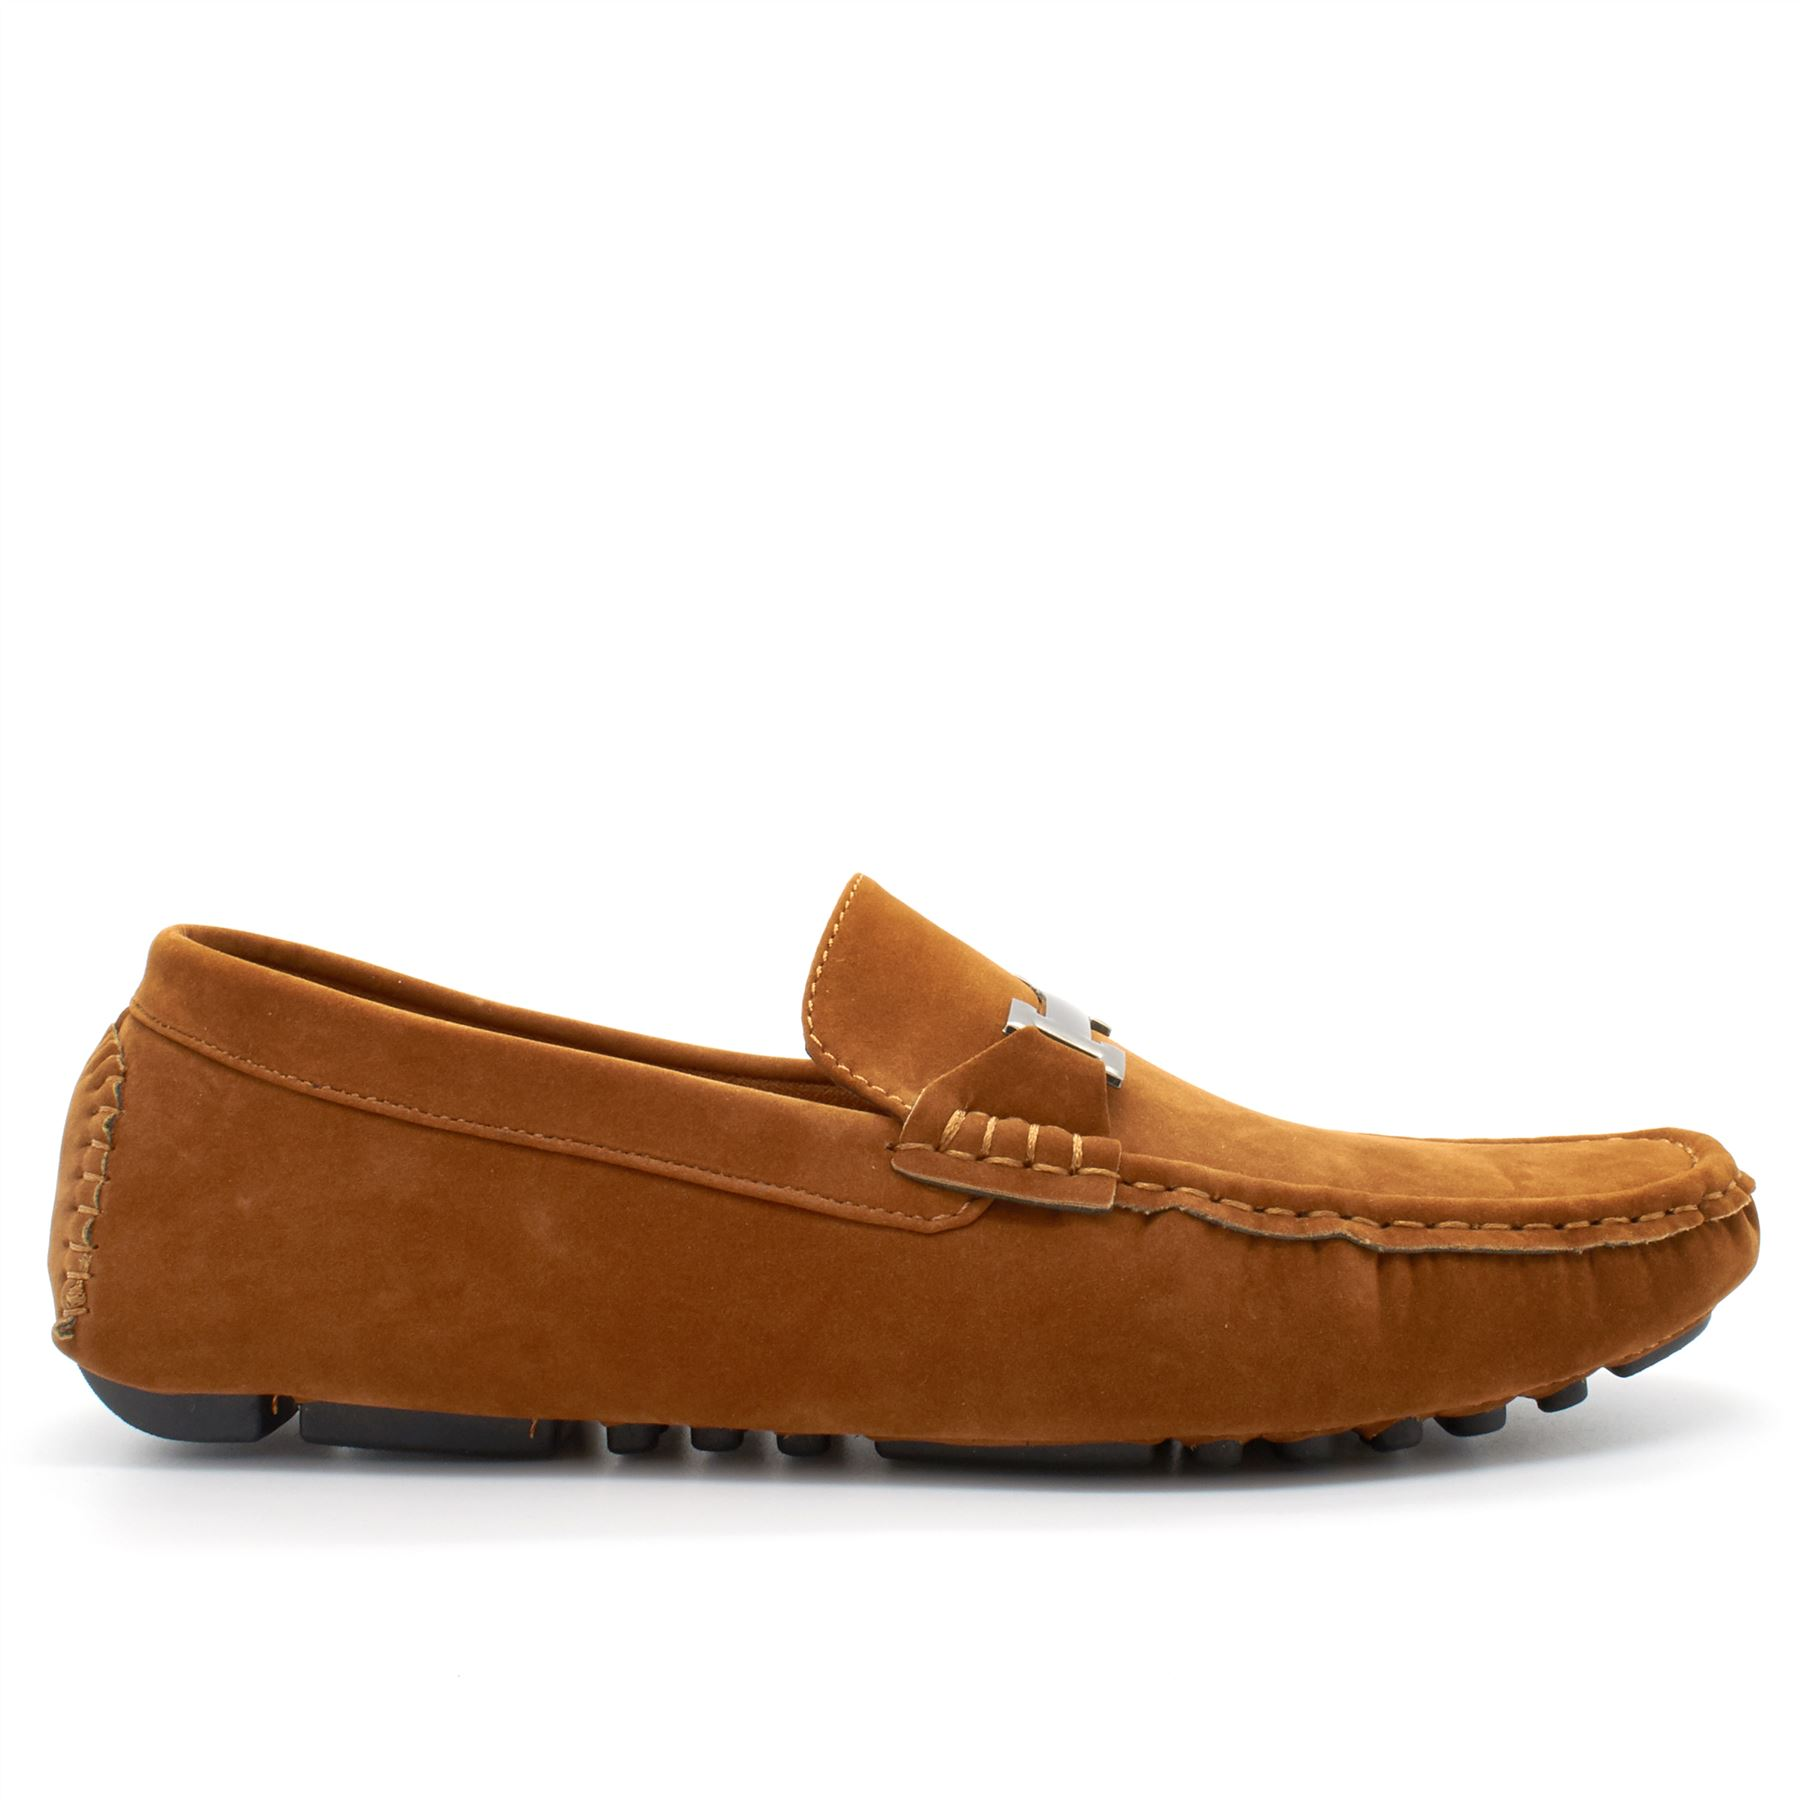 Size 14 (9) Size 15 We have a wide selection of men's moccasins from top footwear brands including POD, Chatham and Barker England.